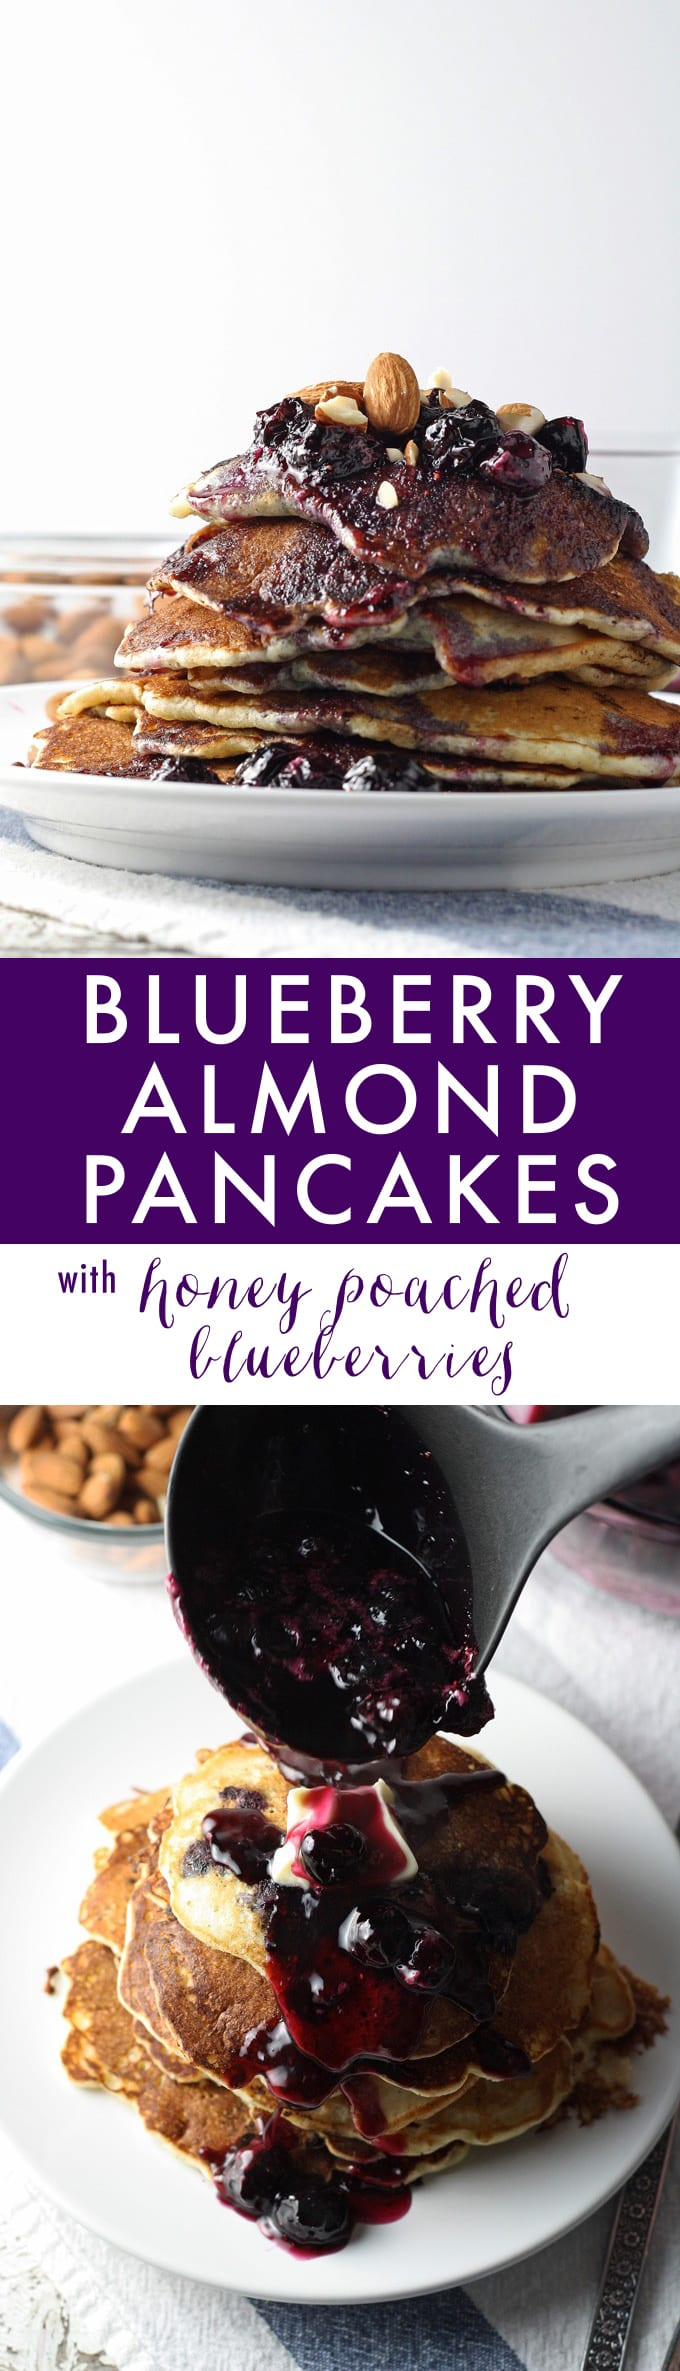 Start your day with these delicious blueberry almond pancakes and homemade blueberry syrup! #breakfast honeyandbirch.com